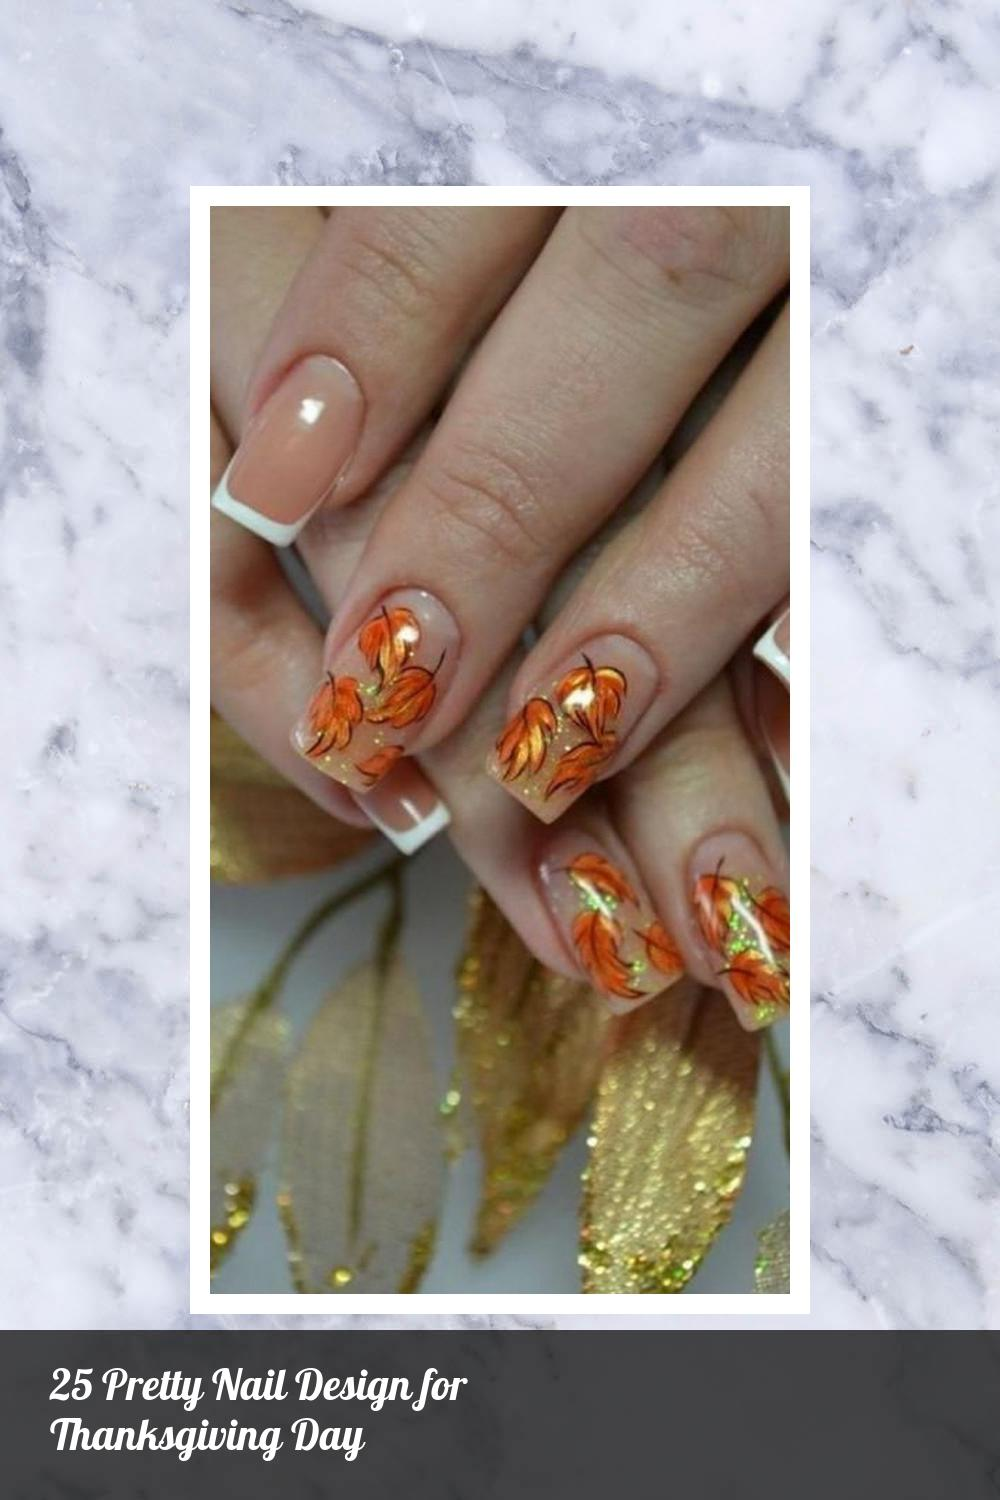 25 Pretty Nail Design for Thanksgiving Day 19